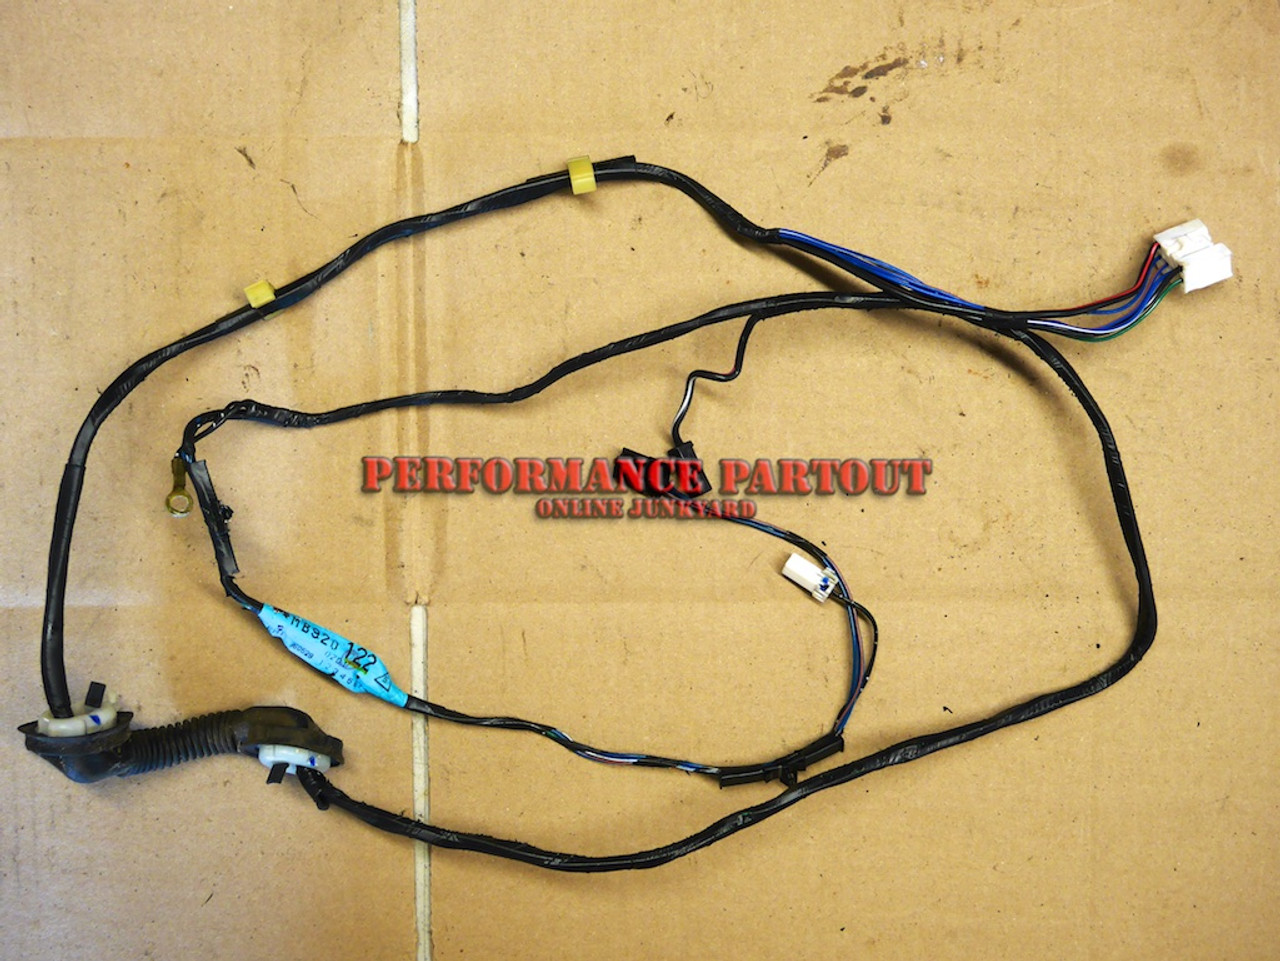 small resolution of  oxygen hatch wiring harness 2g dsm performance partout on safety harness nakamichi harness